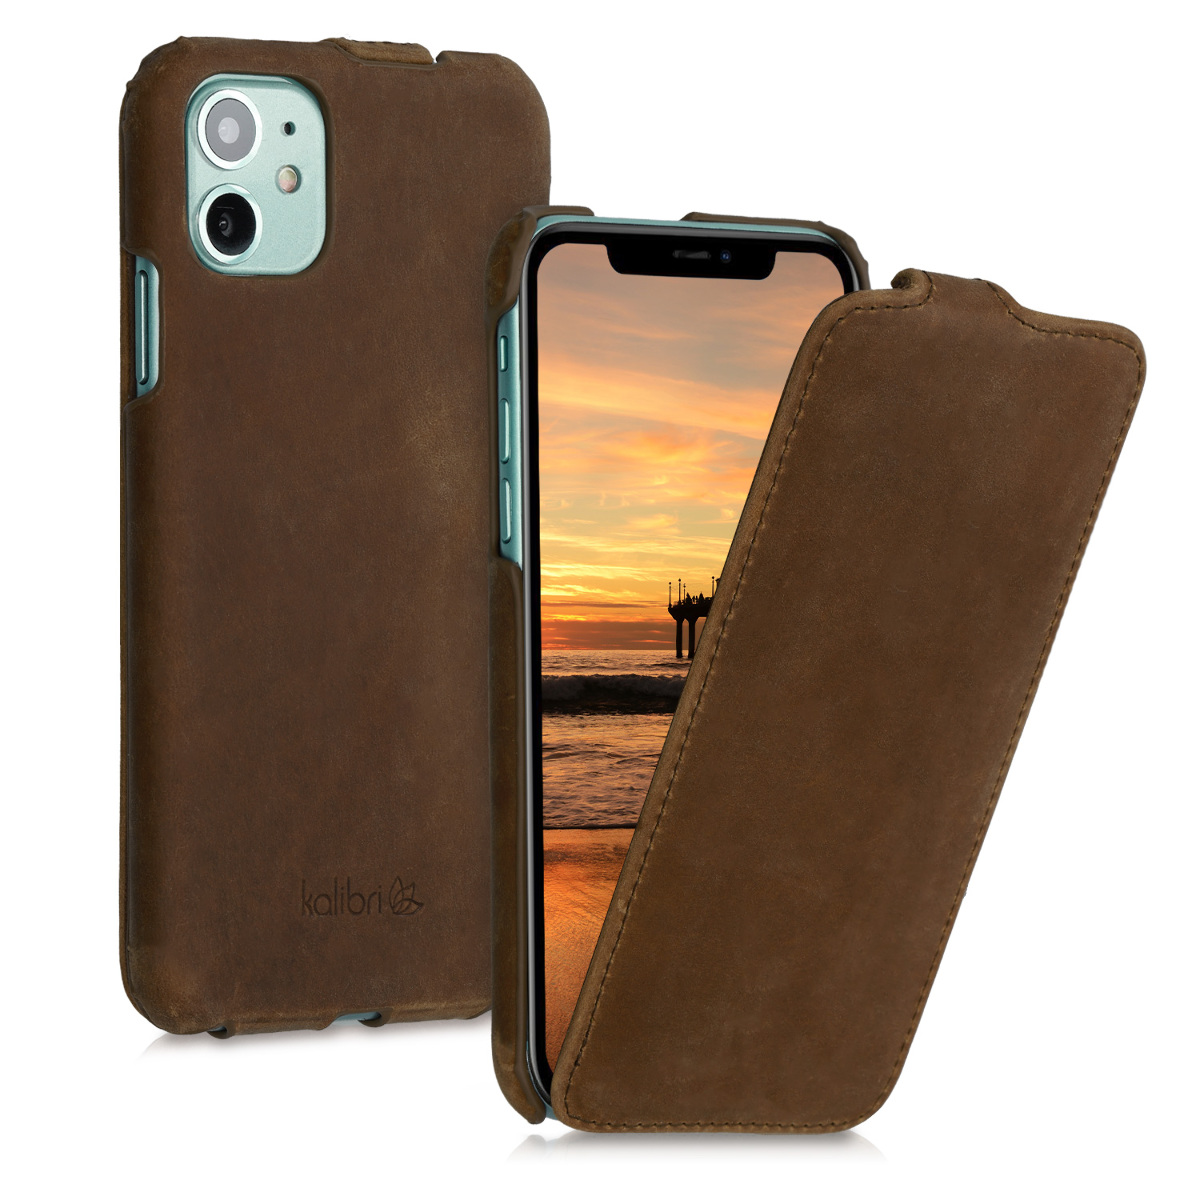 Kalibri Δερμάτινη Θήκη Flip Apple iPhone 11 - Ultra Slim Leather Protective Phone Cover - Brown (50410.05)